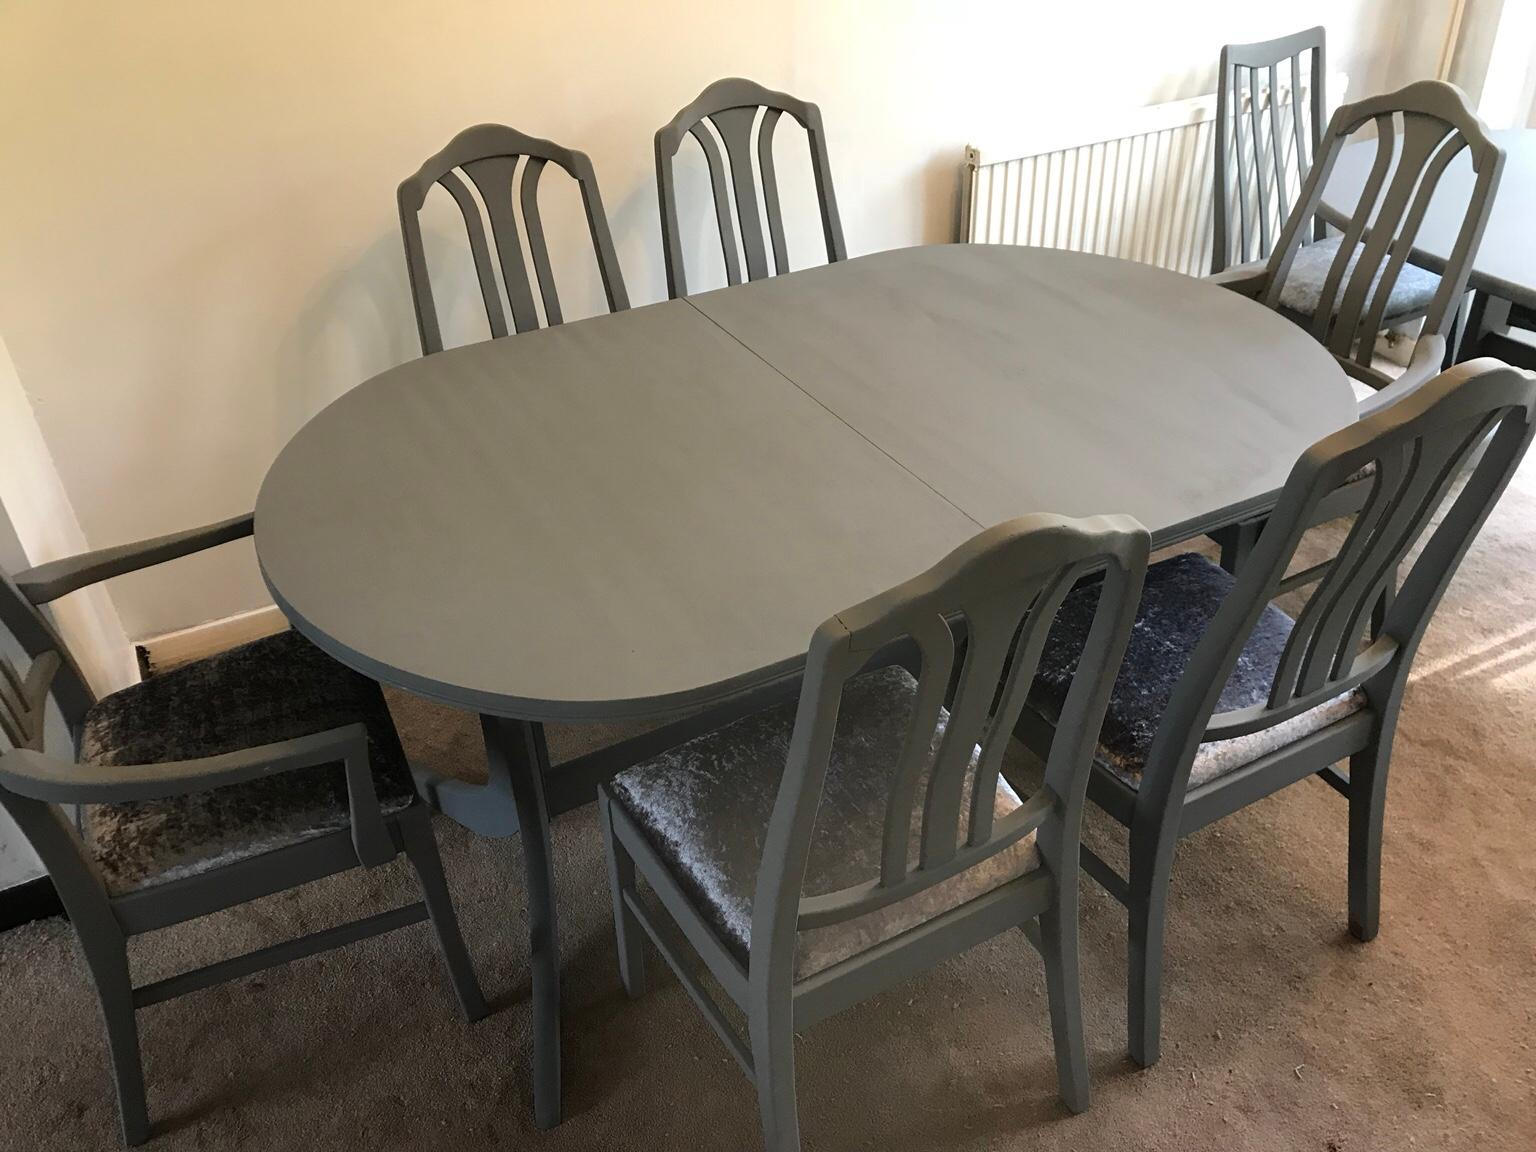 Refurbished Chairs Refurbished Nathan Dining Table 6 Chairs